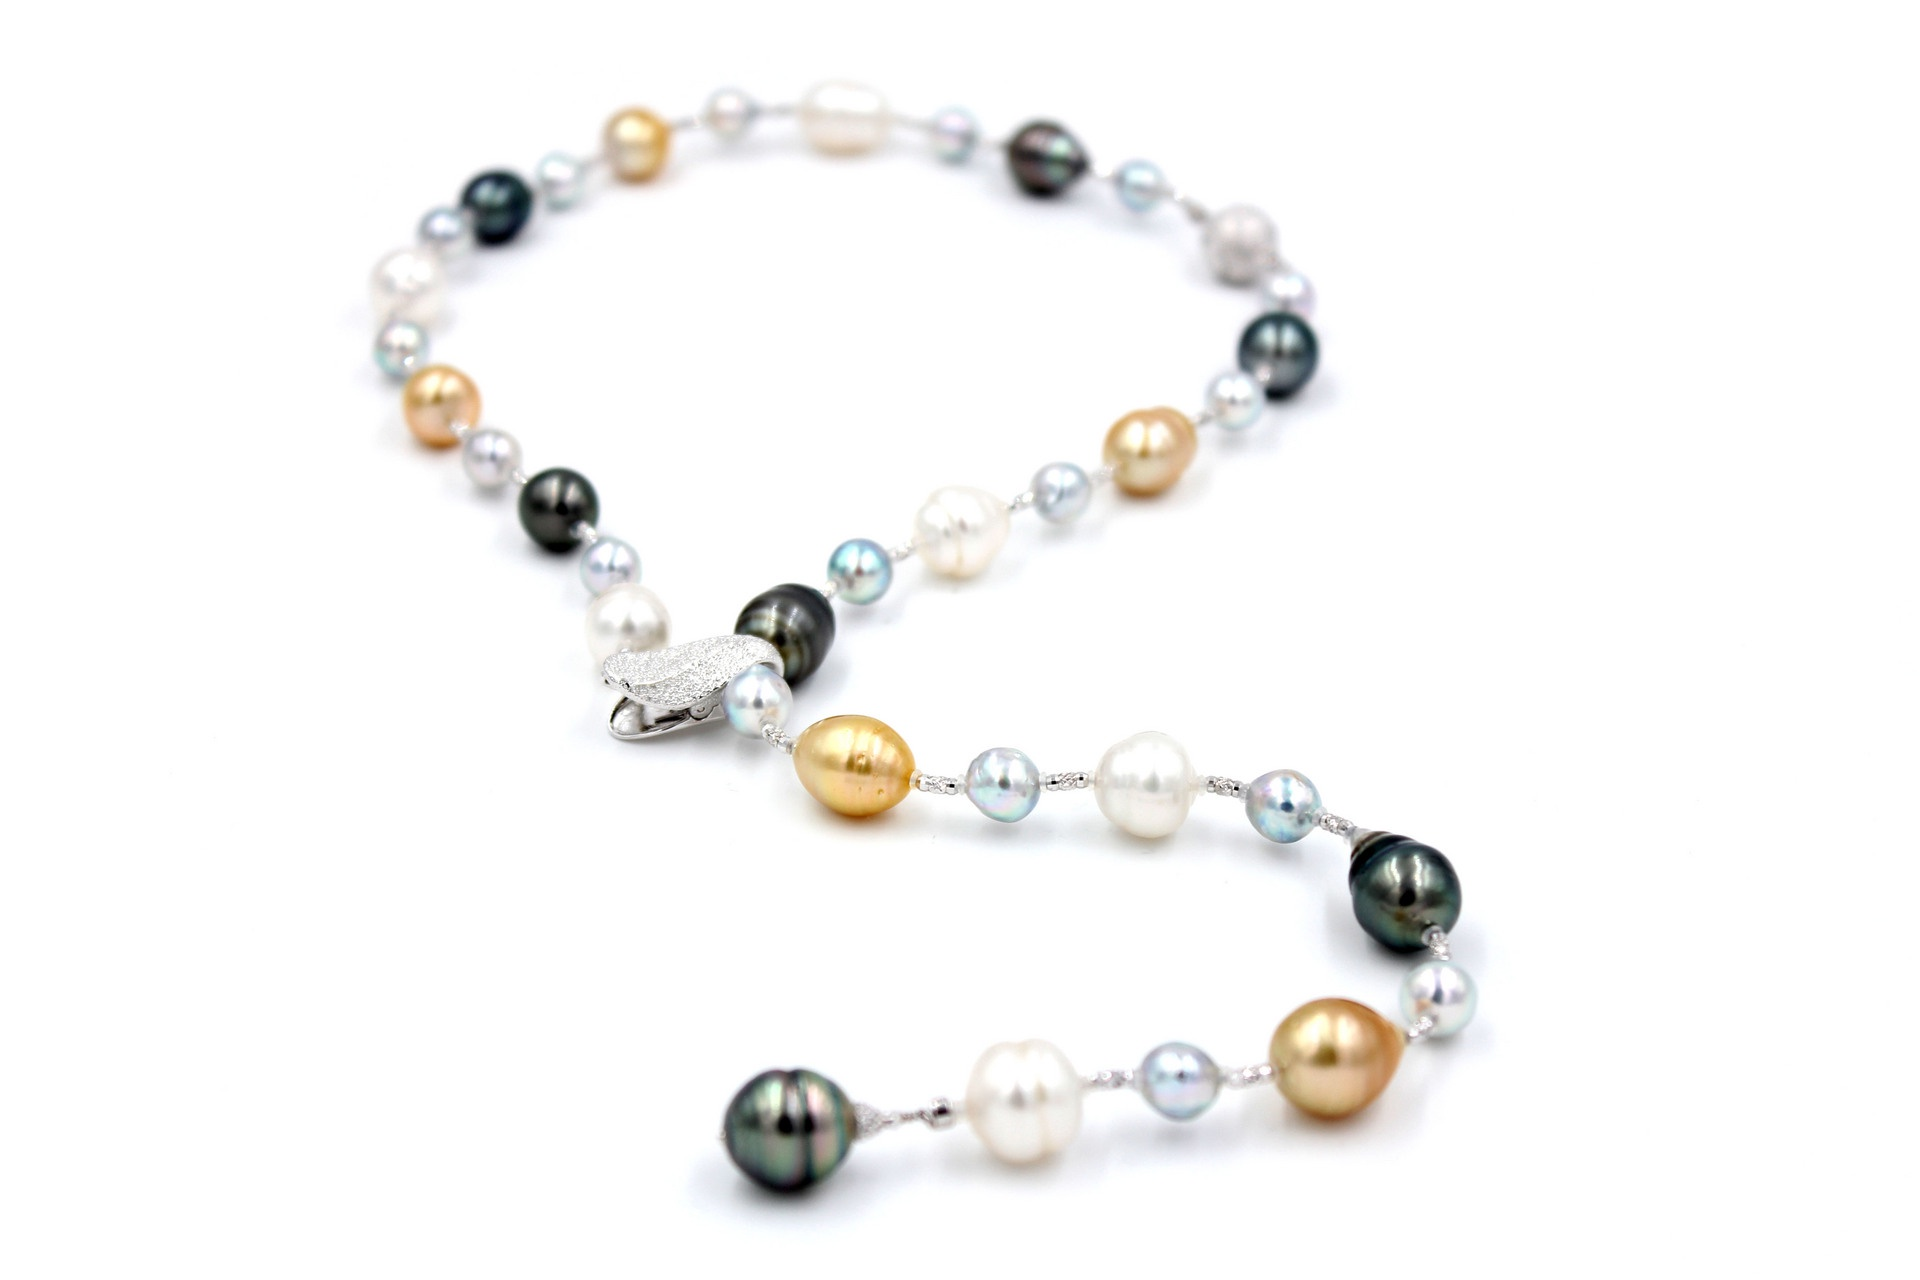 Colourful South Sea Pearl Necklace/Bracelet Combination with Japanese 18K White Gold and Globes